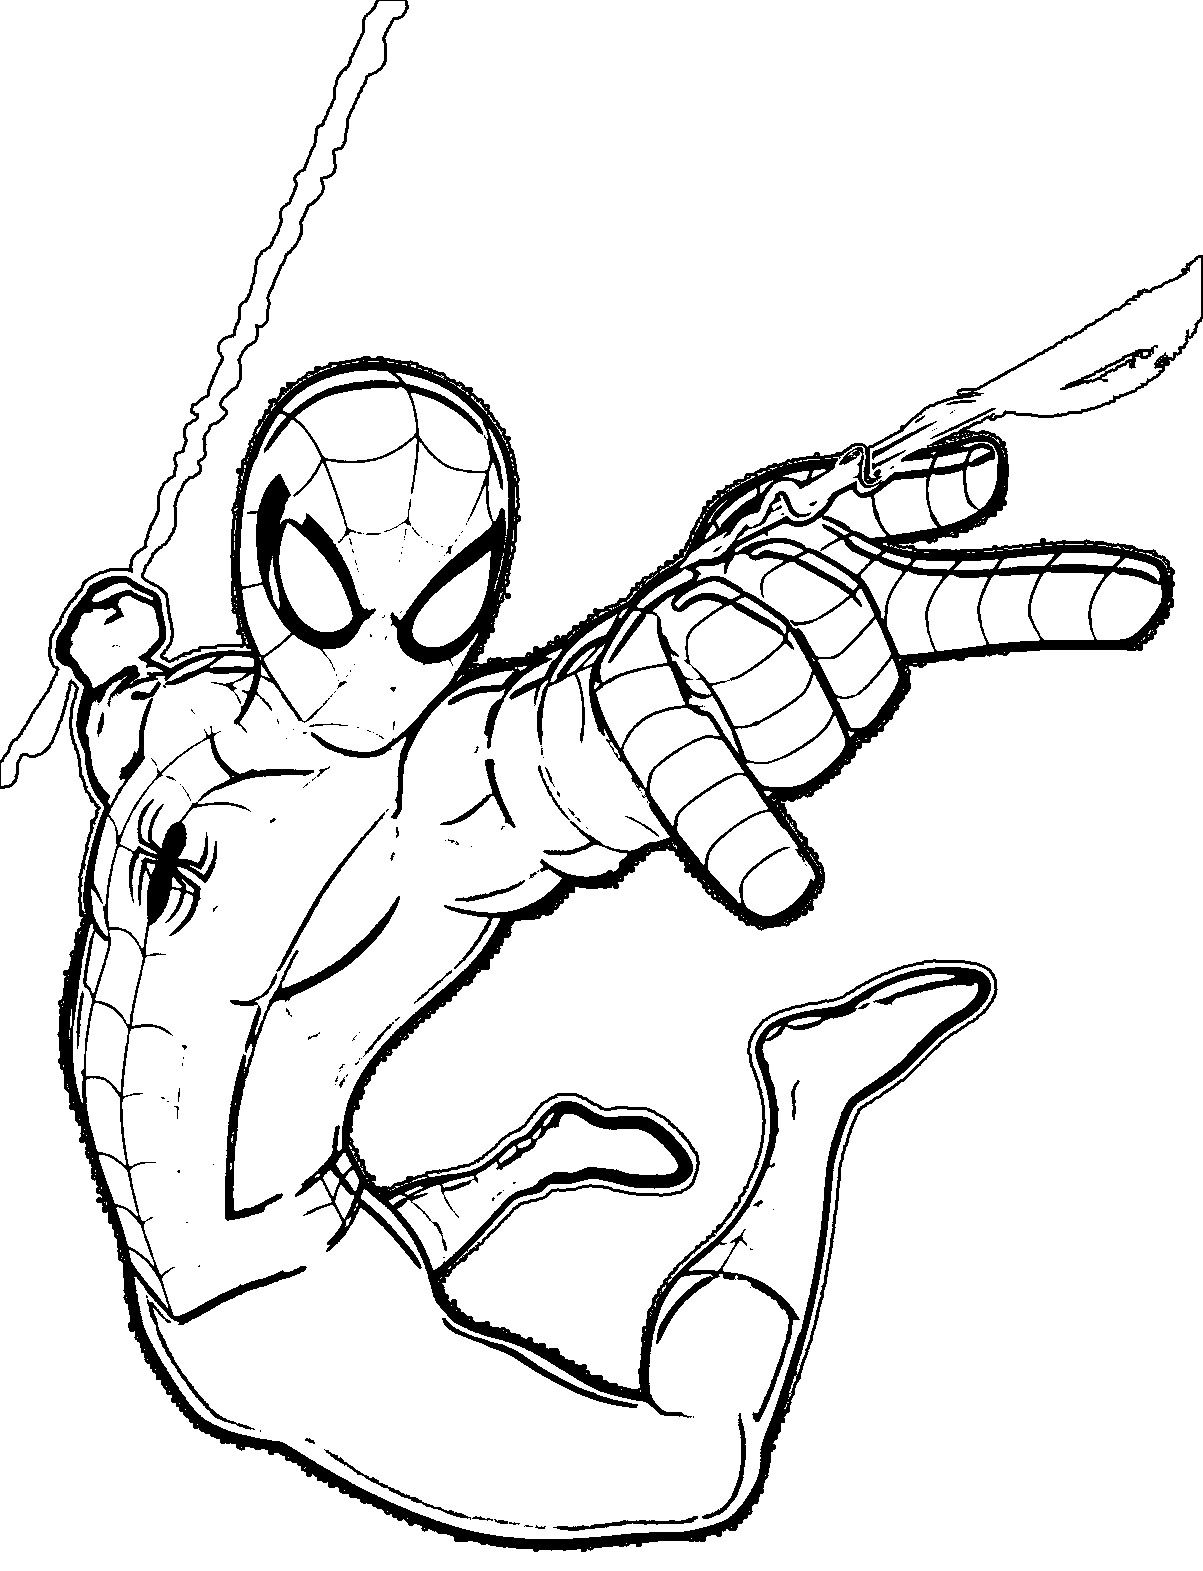 Printable Spiderman Coloring Pages Easy And Fun Free Coloring Sheets Spiderman Coloring Marvel Coloring Spiderman Drawing